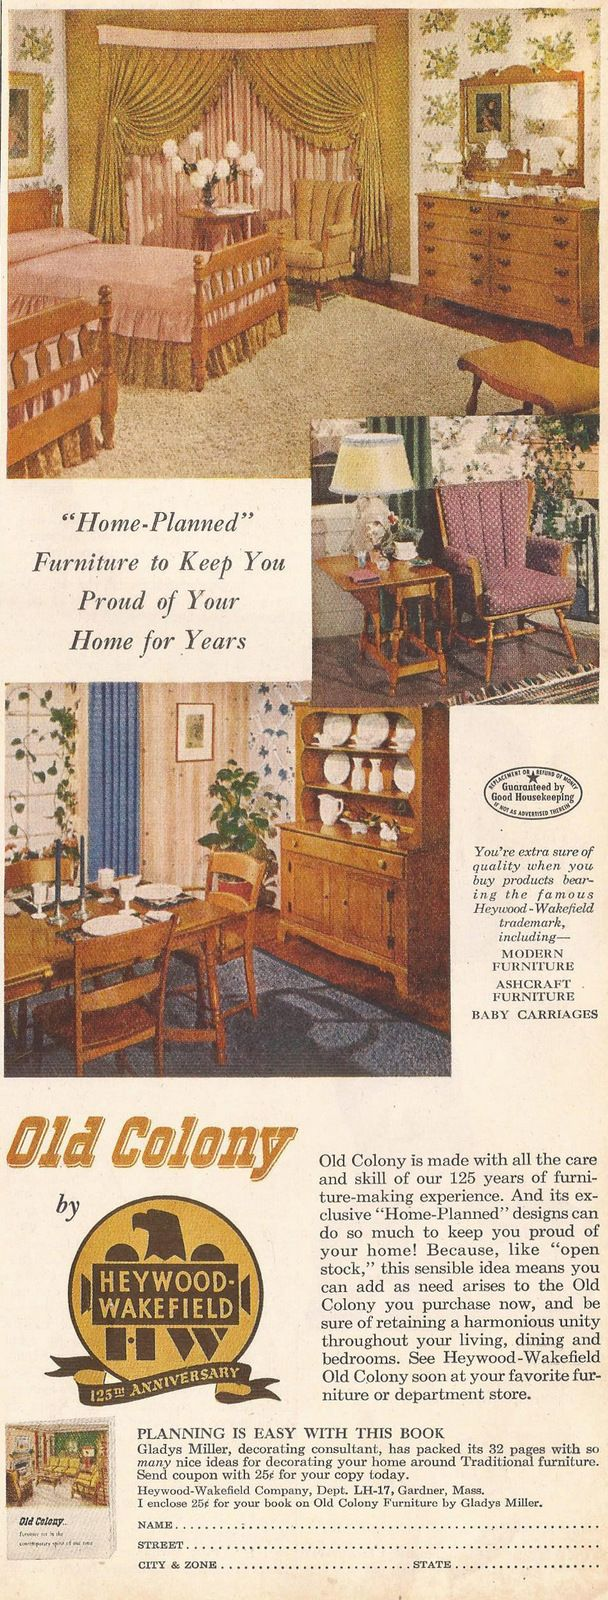 Old Colony By Heywood Wakefield Furniture Ad From Ladies Home Journal,  November 1951